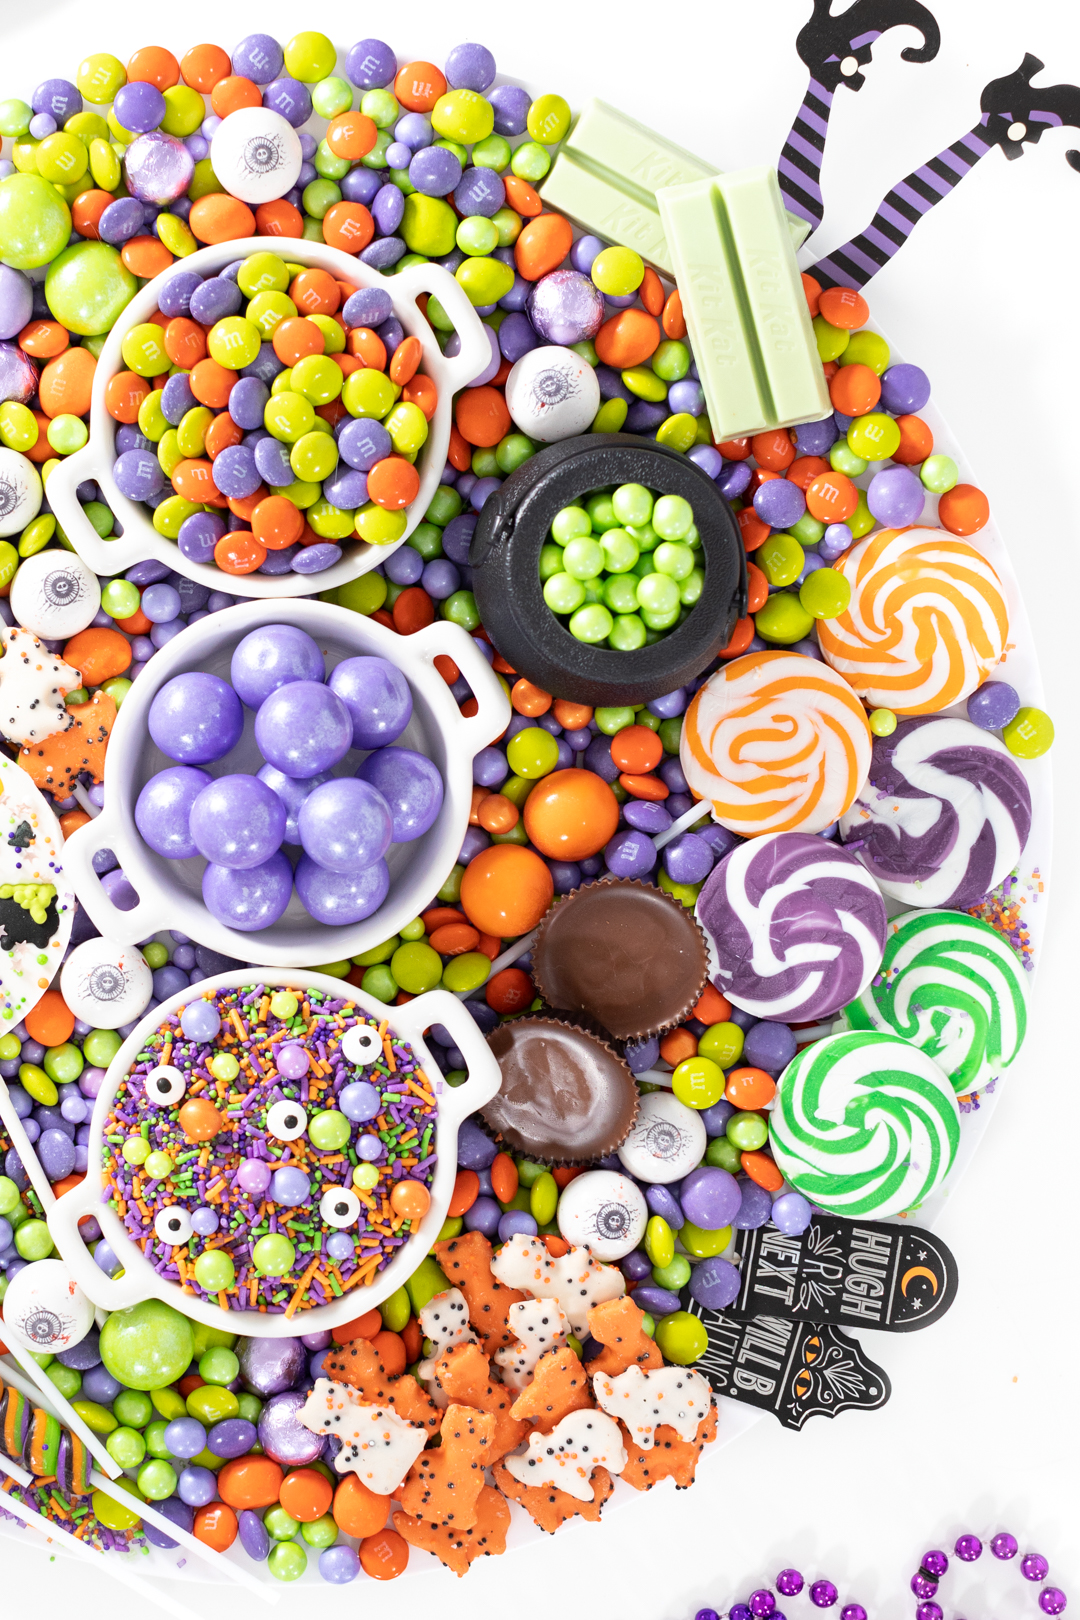 witch party dessert platter filled with candies and sweets